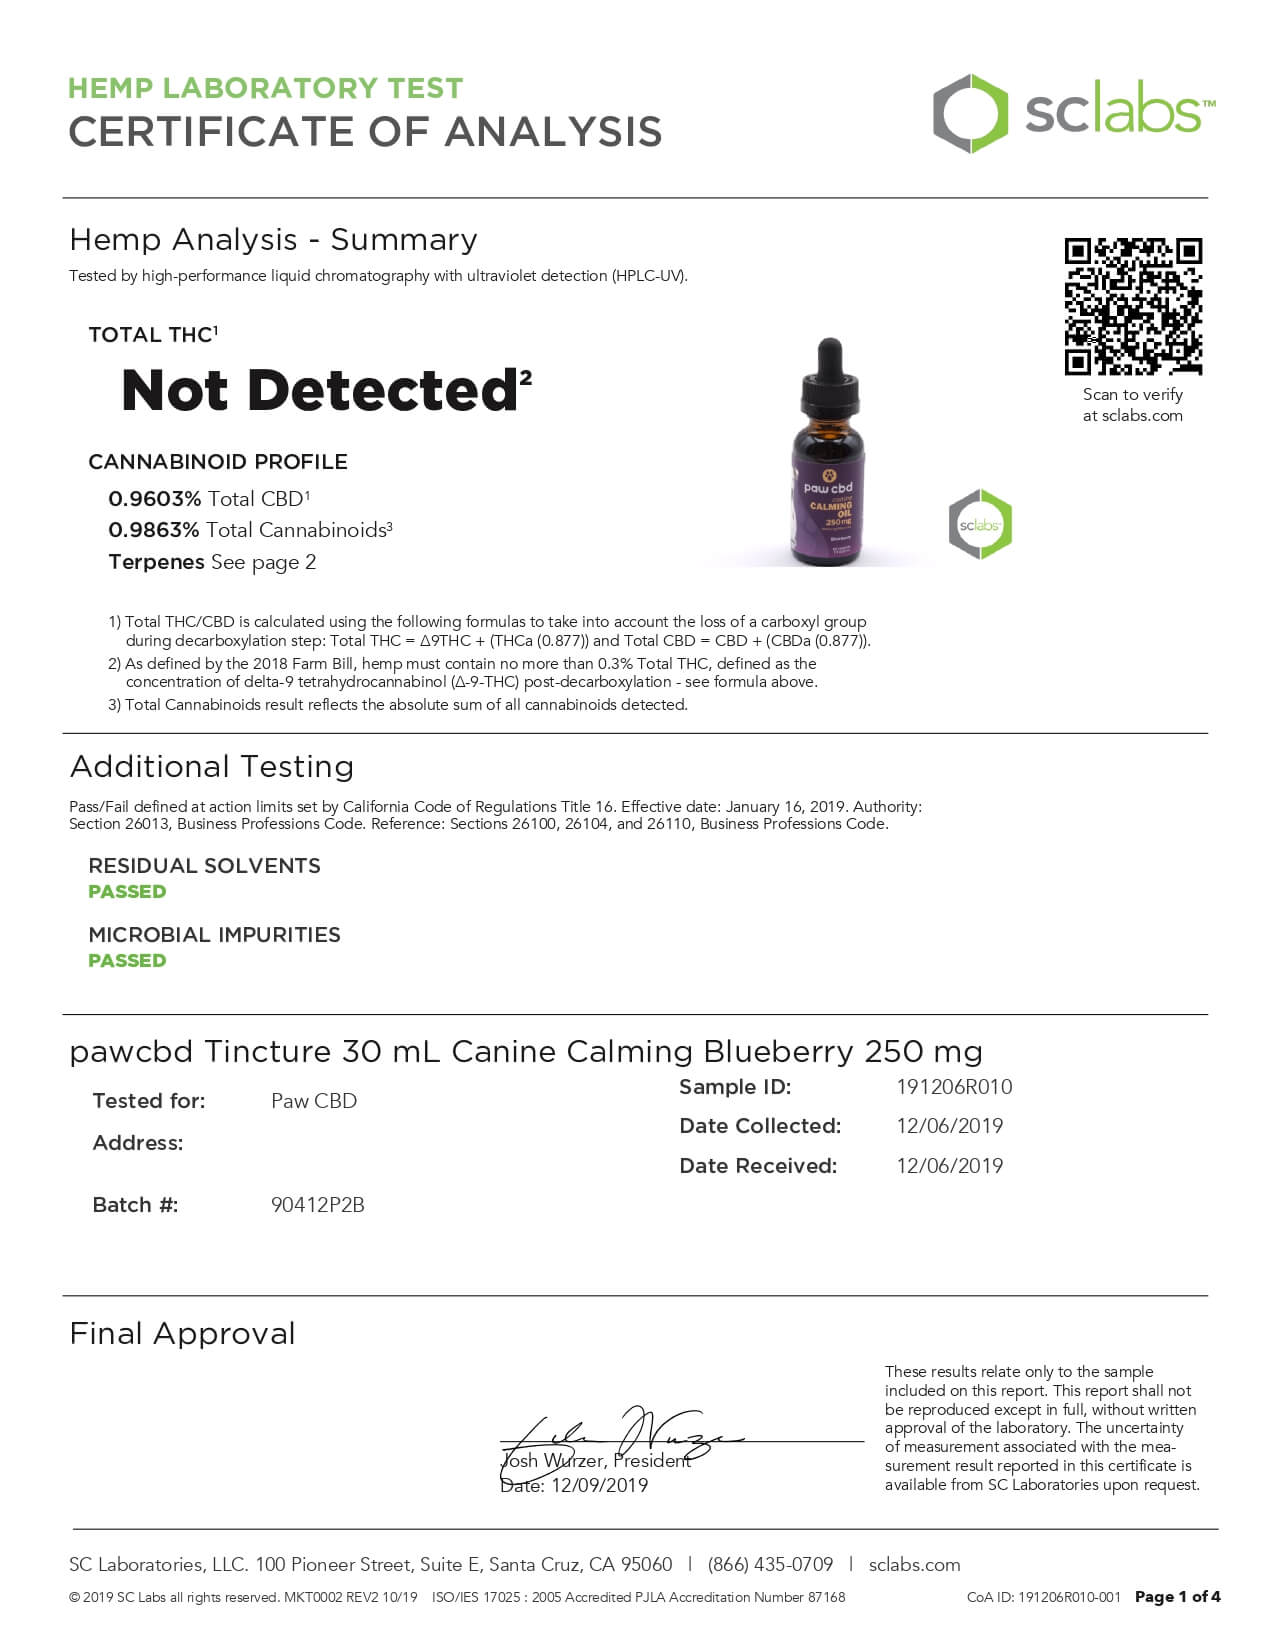 cbdMD CBD Pet Tincture Blueberry Calming Oil for Canines 250mg Lab Report